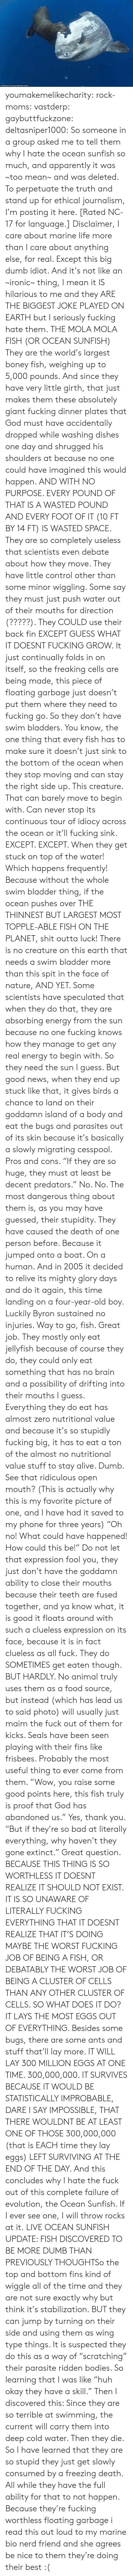 Alive, Apparently, and Bad: ORihad Herrma M  S youmakemelikecharity:  rock-moms:  vastderp:  gaybuttfuckzone:  deltasniper1000:  So someone in a group asked me to tell them why I hate the ocean sunfish so much, and apparently it was ~too mean~ and was deleted. To perpetuate the truth and stand up for ethical journalism, I'm posting it here. [Rated NC-17 for language.]  Disclaimer, I care about marine life more than I care about anything else, for real. Except this big dumb idiot. And it's not like an ~ironic~ thing, I mean it IS hilarious to me and they ARE THE BIGGEST JOKE PLAYED ON EARTH but I seriously fucking hate them.  THE MOLA MOLA FISH (OR OCEAN SUNFISH)  They are the world's largest boney fish, weighing up to 5,000 pounds. And since they have very little girth, that just makes them these absolutely giant fucking dinner plates that God must have accidentally dropped while washing dishes one day and shrugged his shoulders at because no one could have imagined this would happen. AND WITH NO PURPOSE. EVERY POUND OF THAT IS A WASTED POUND AND EVERY FOOT OF IT (10 FT BY 14 FT) IS WASTED SPACE.  They are so completely useless that scientists even debate about how they move. They have little control other than some minor wiggling. Some say they must just push water out of their mouths for direction (?????). They COULD use their back fin EXCEPT GUESS WHAT IT DOESNT FUCKING GROW. It just continually folds in on itself, so the freaking cells are being made, this piece of floating garbage just doesn't put them where they need to fucking go.   So they don't have swim bladders. You know, the one thing that every fish has to make sure it doesn't just sink to the bottom of the ocean when they stop moving and can stay the right side up. This creature. That can barely move to begin with. Can never stop its continuous tour of idiocy across the ocean or it'll fucking sink. EXCEPT. EXCEPT. When they get stuck on top of the water! Which happens frequently! Because without the wh